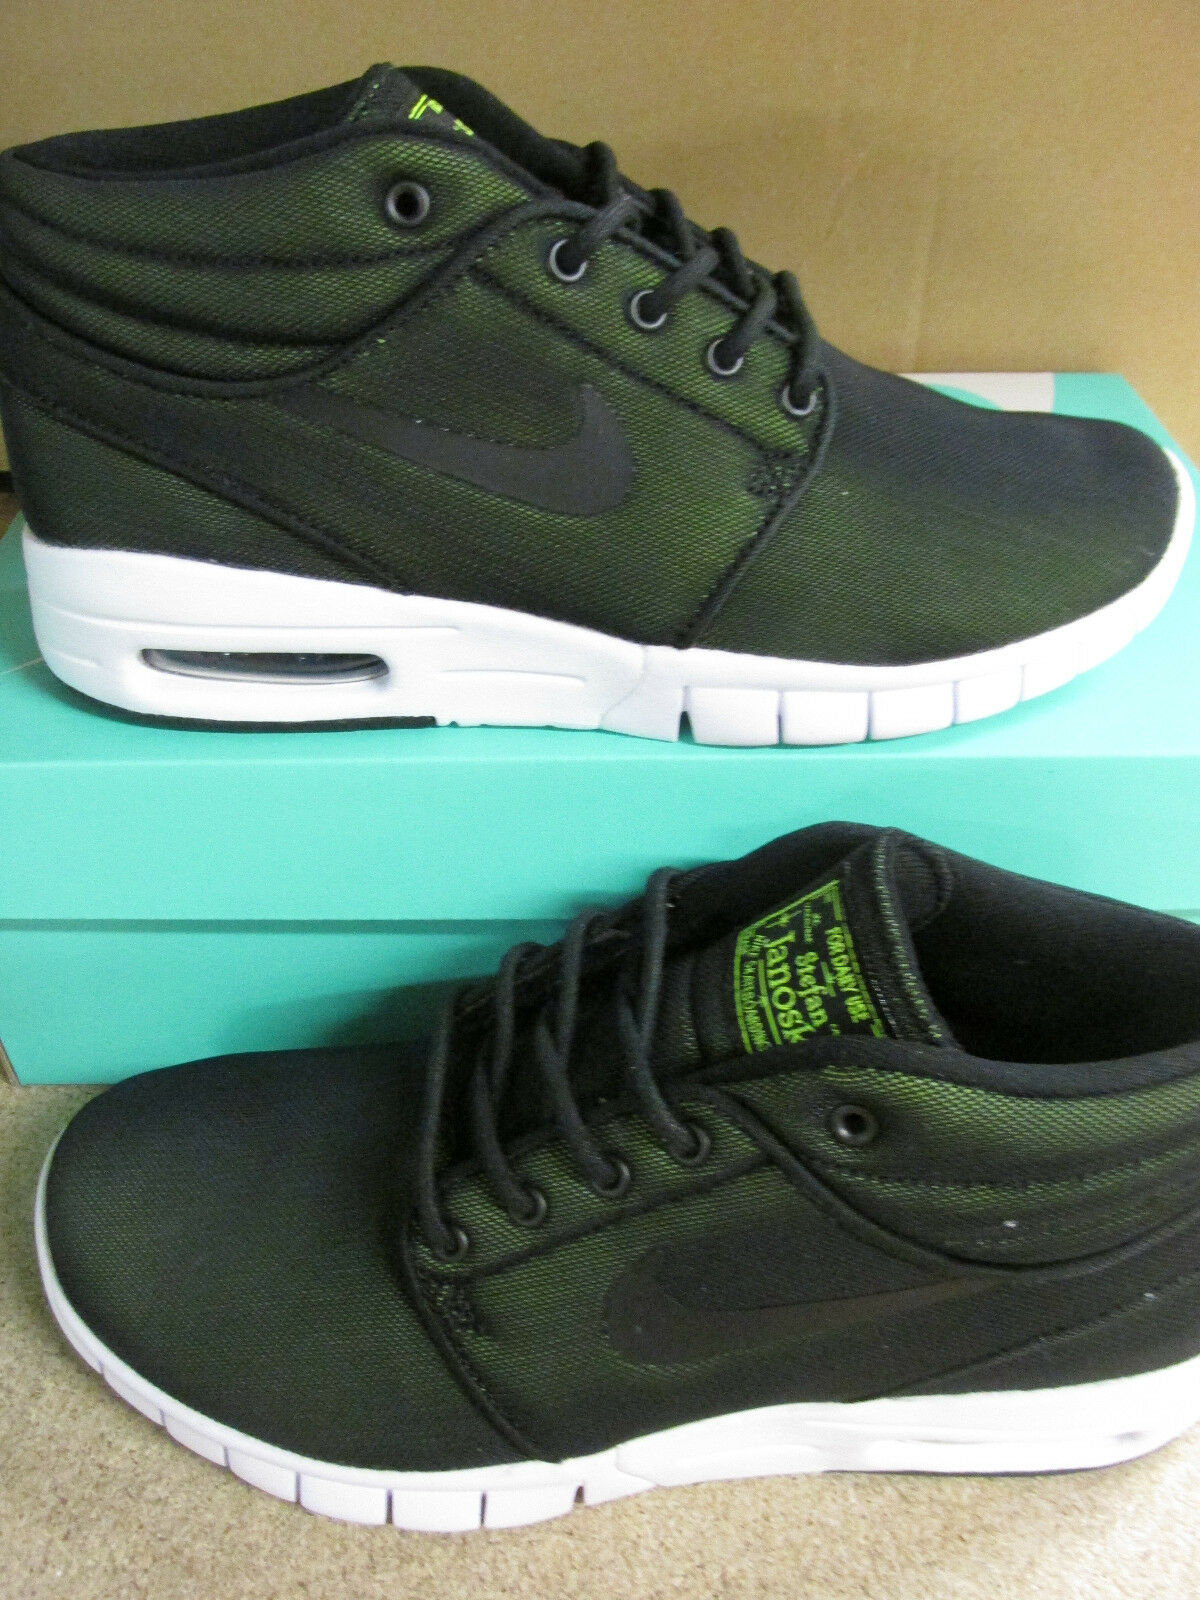 nike SB stefan janoski max mid mens trainers 807507 007 sneakers shoes